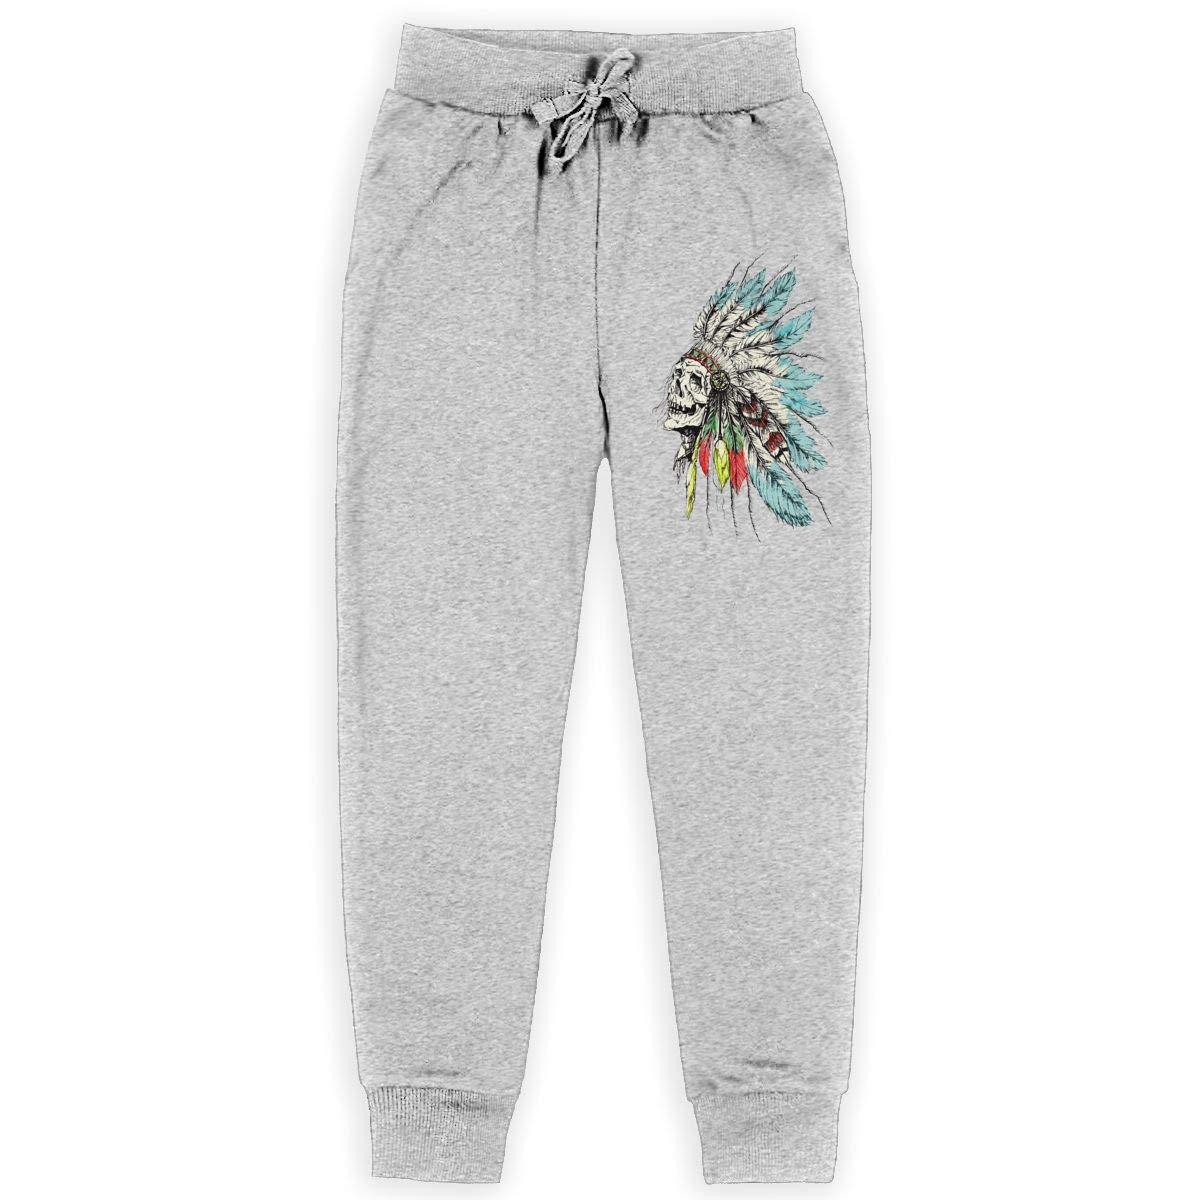 Boys Cotton Sweatpants Native American Skull in National Hat Adjustable Waist Pants with Pocket